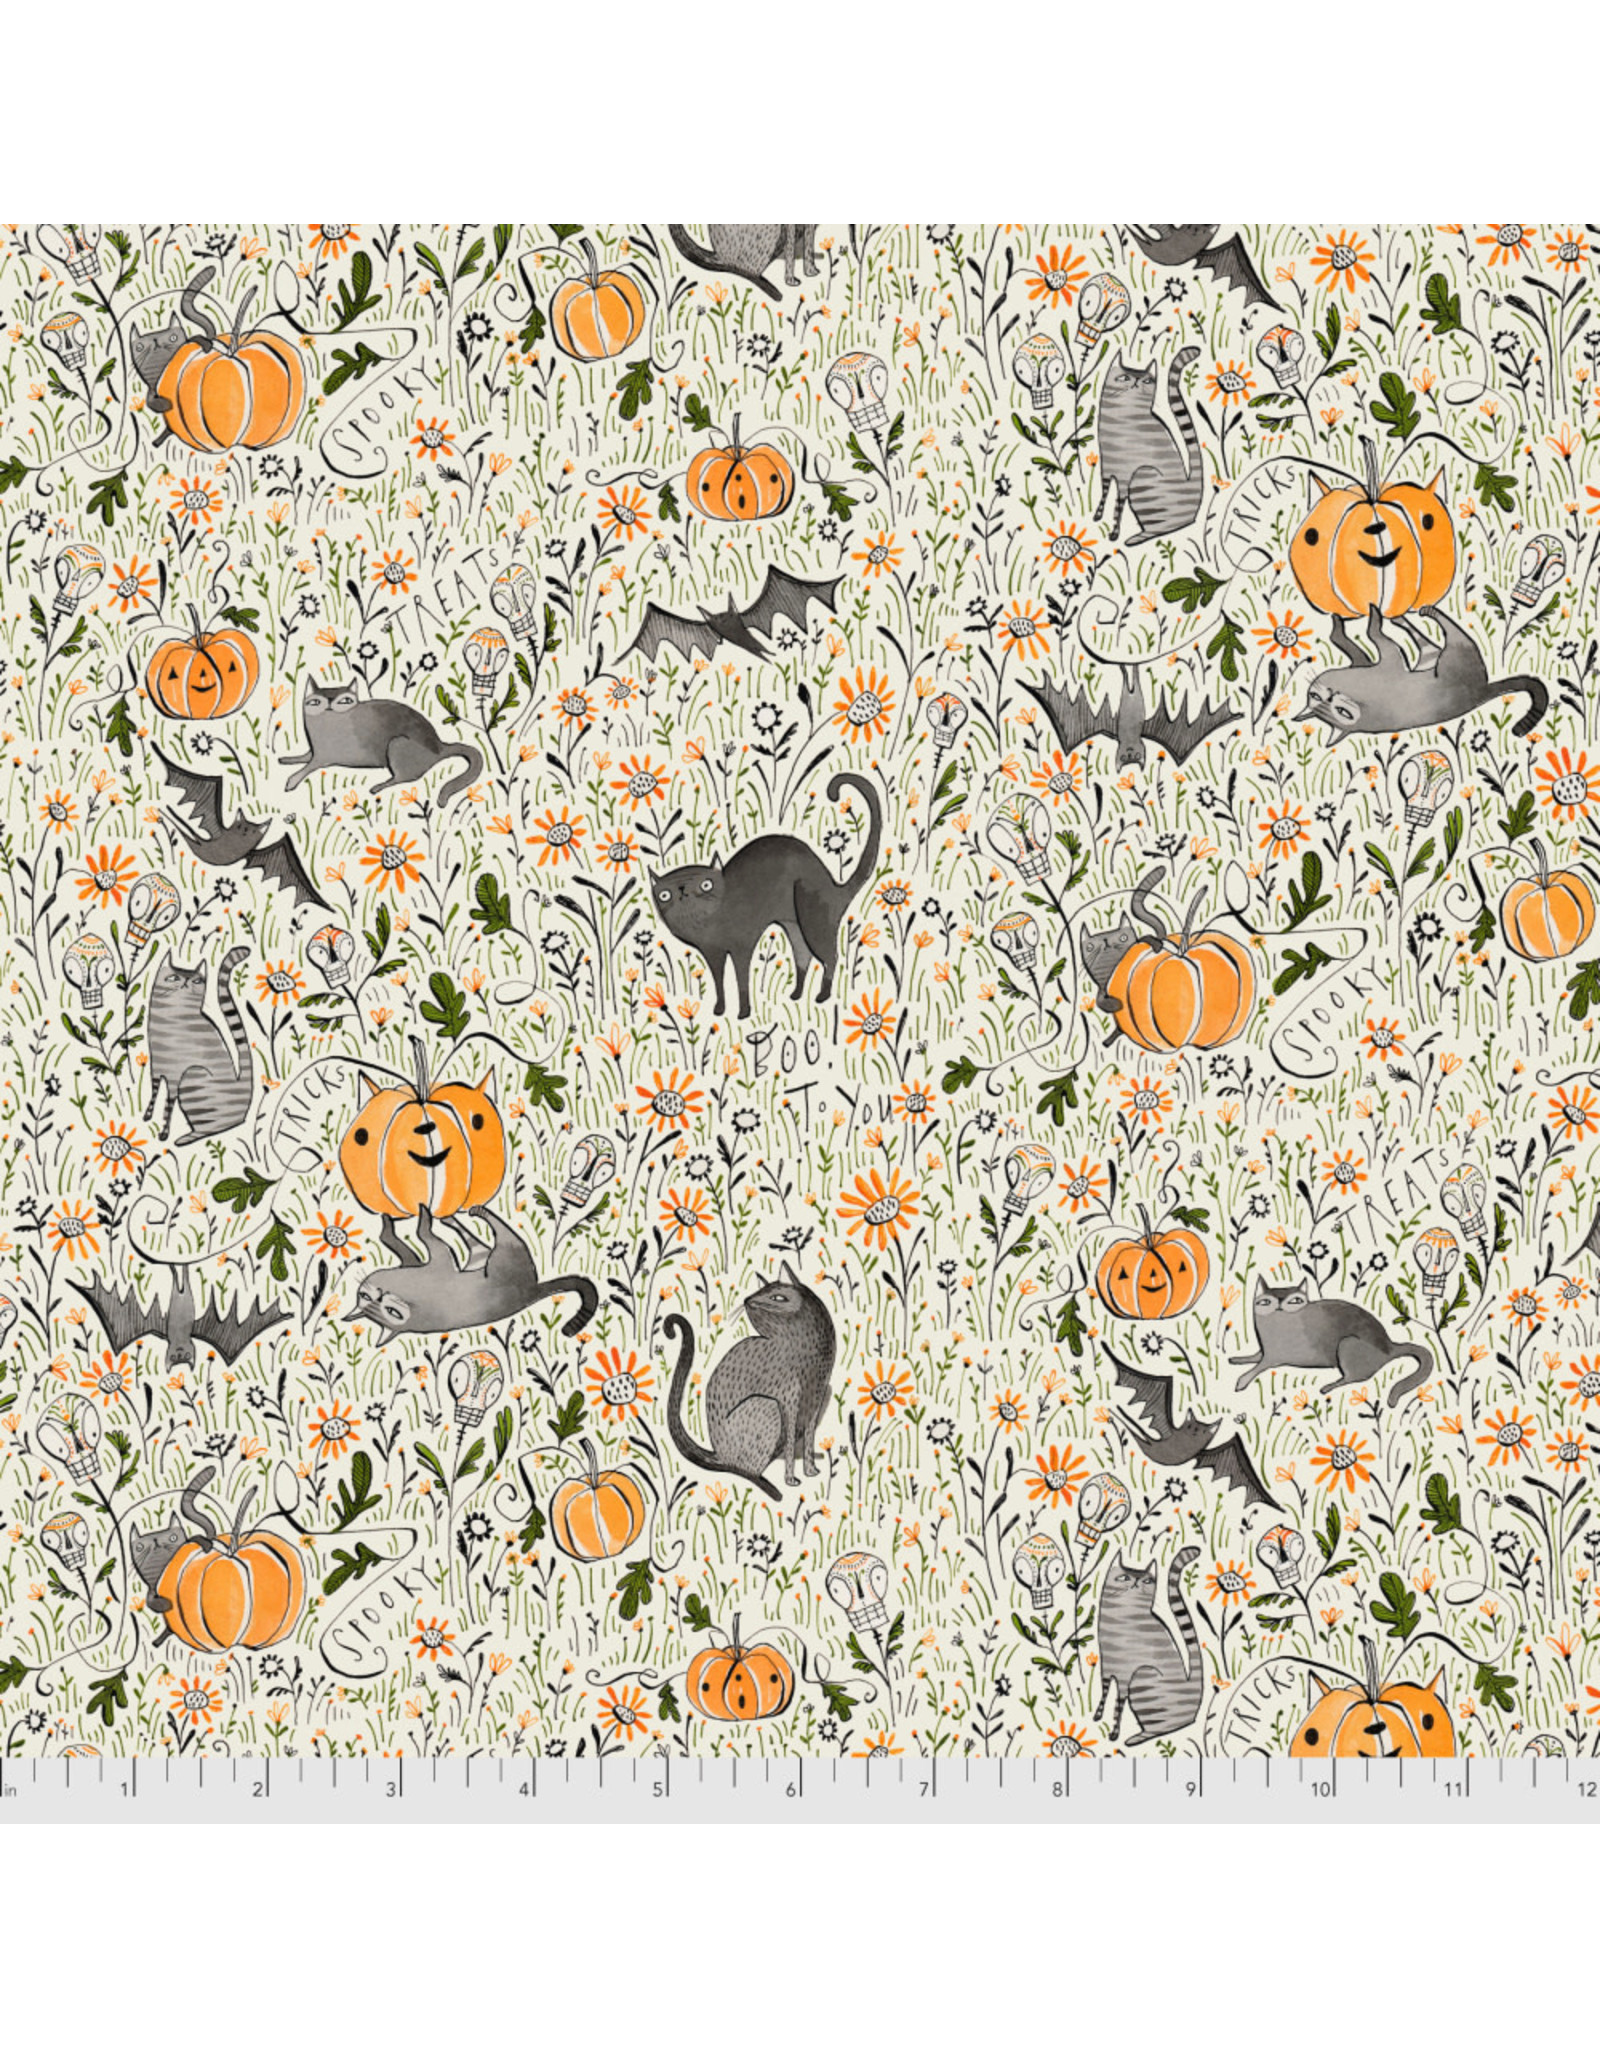 PD's Maude Asbury Collection Spirit of Halloween, In the Patch in Grey, Dinner Napkin